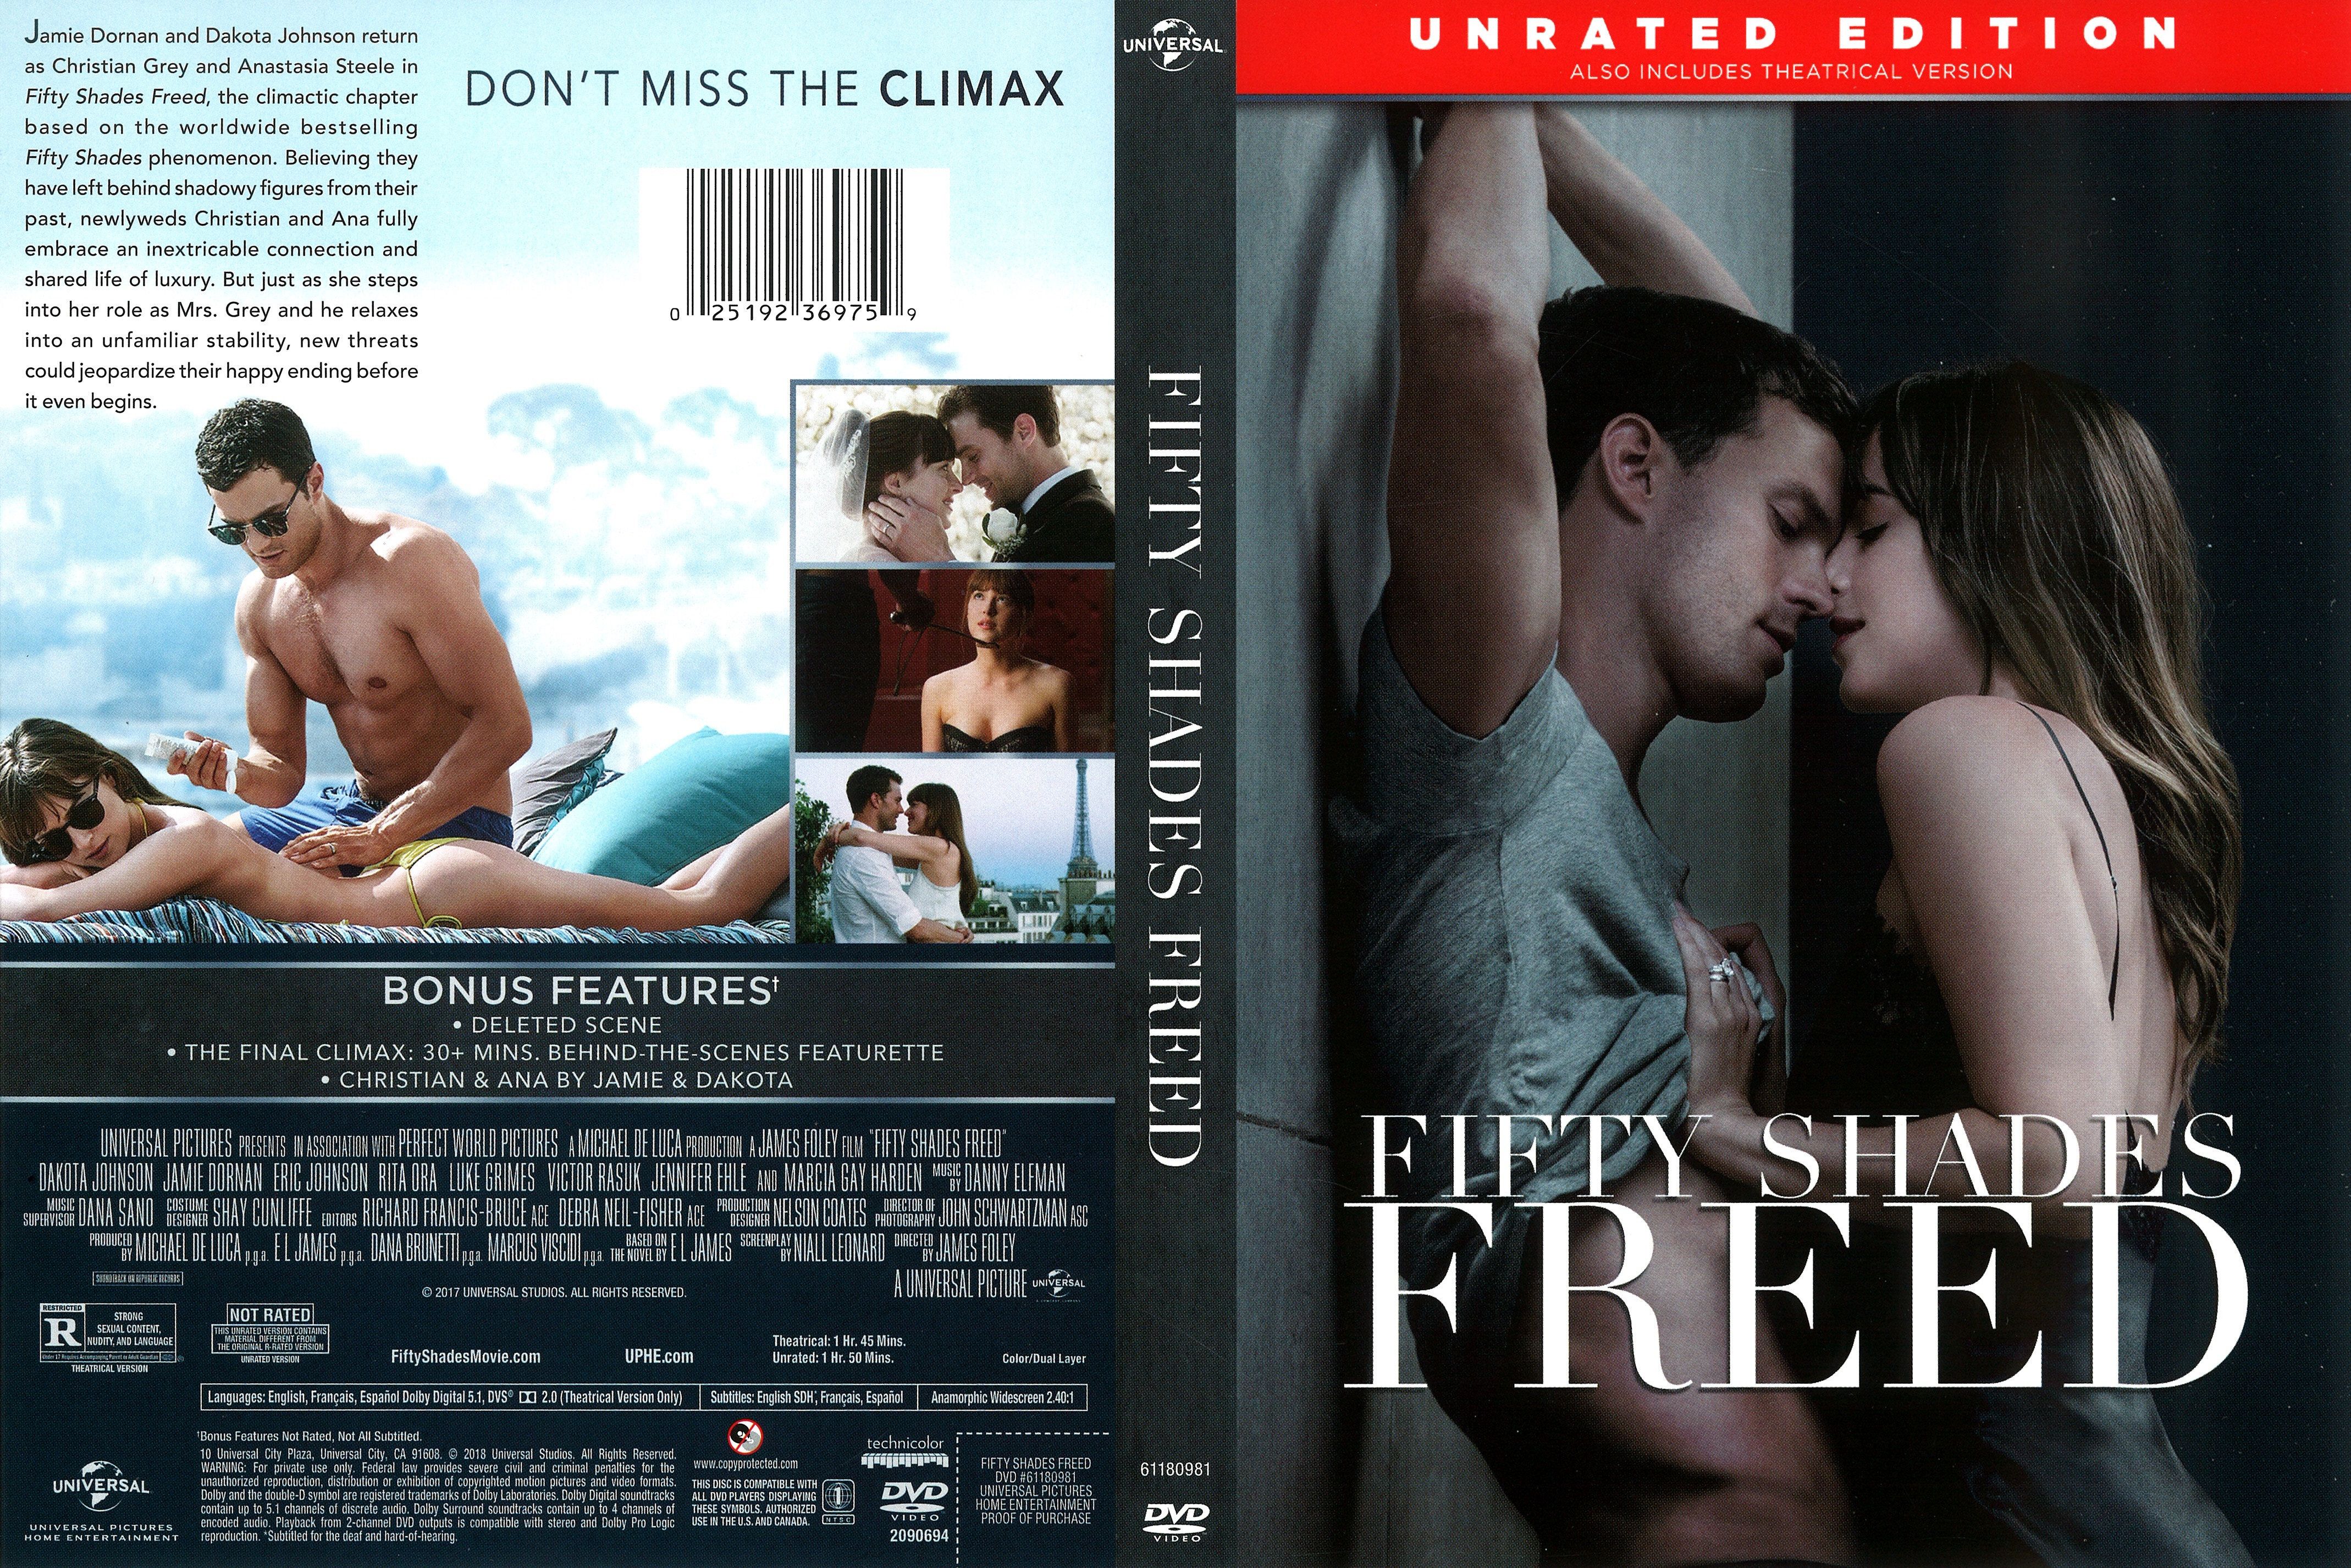 Fifty Shades Freed 2018 Front Dvd Covers Cover Century Over 500 000 Album Art Covers For Free